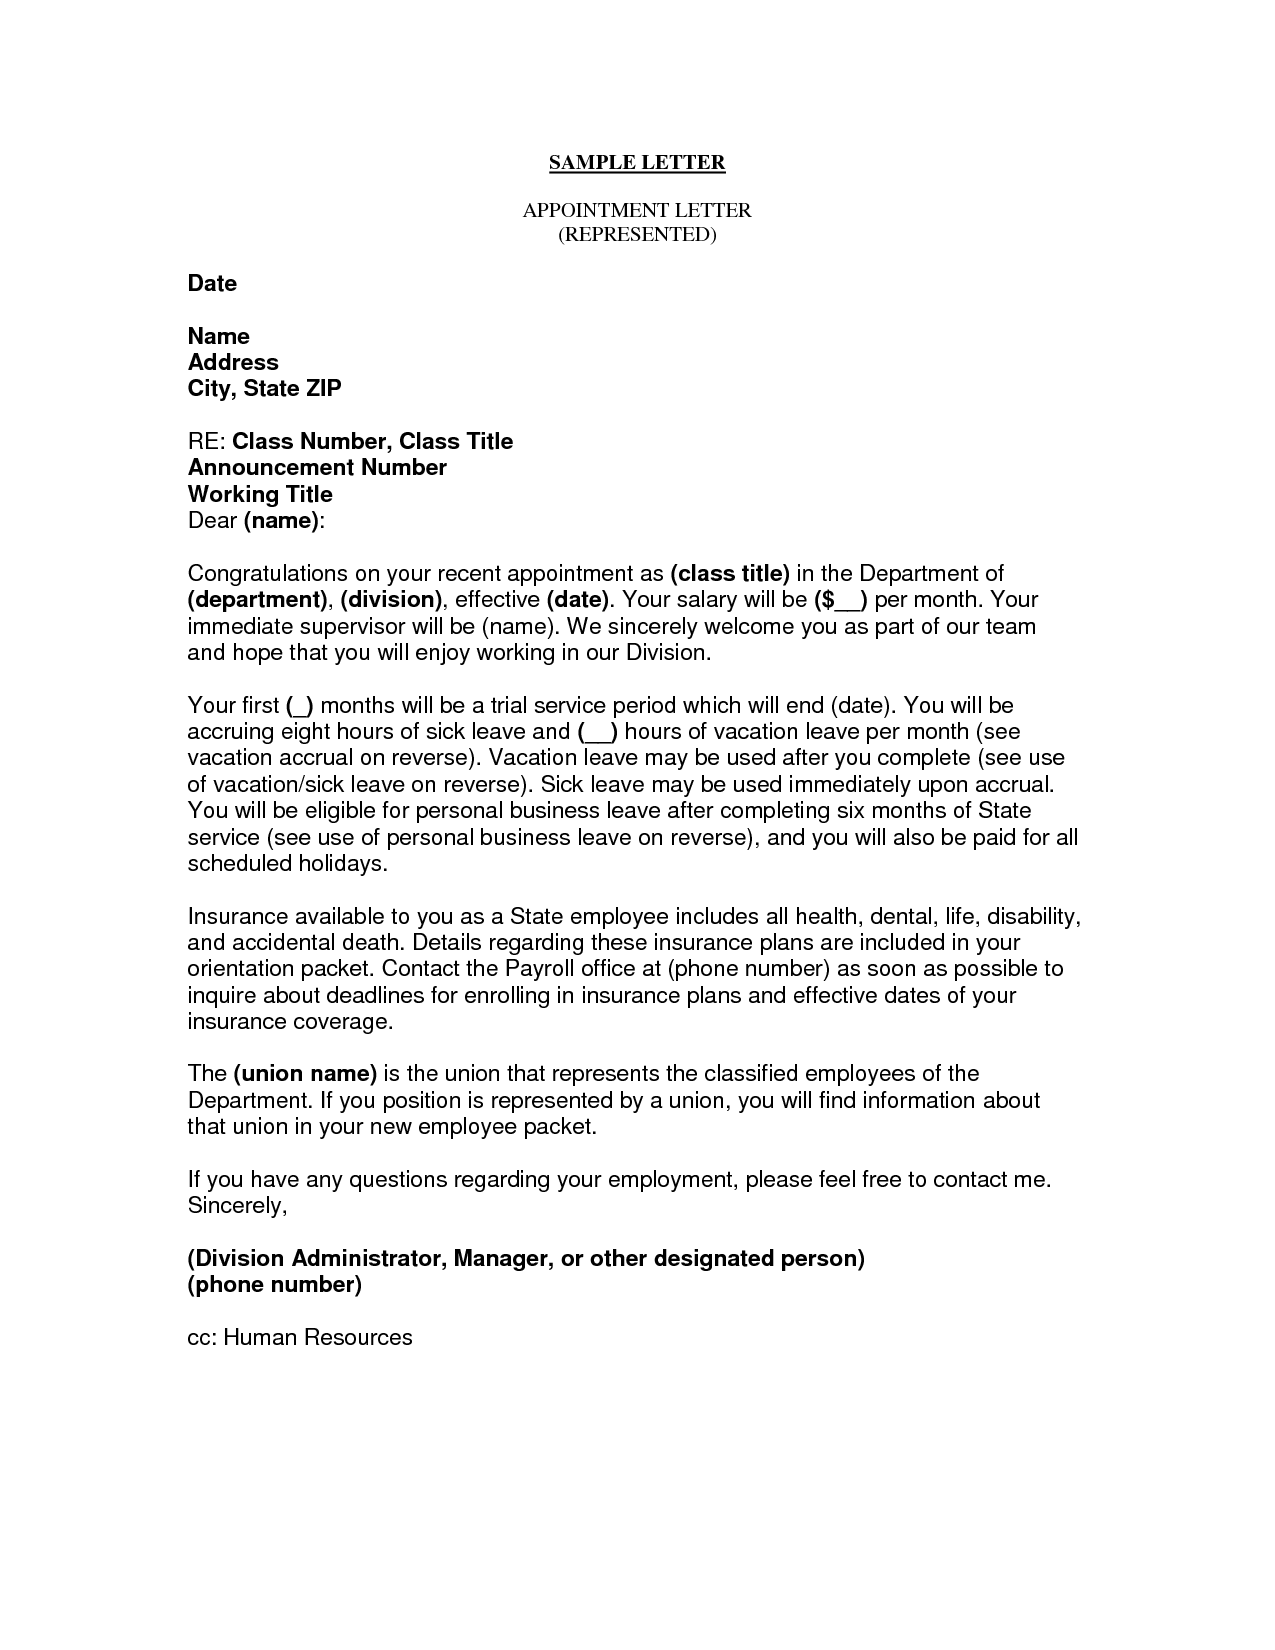 Business appointment letter this letter is used in any business business appointment letter this letter is used in any business organizations for getting the appointment flashek